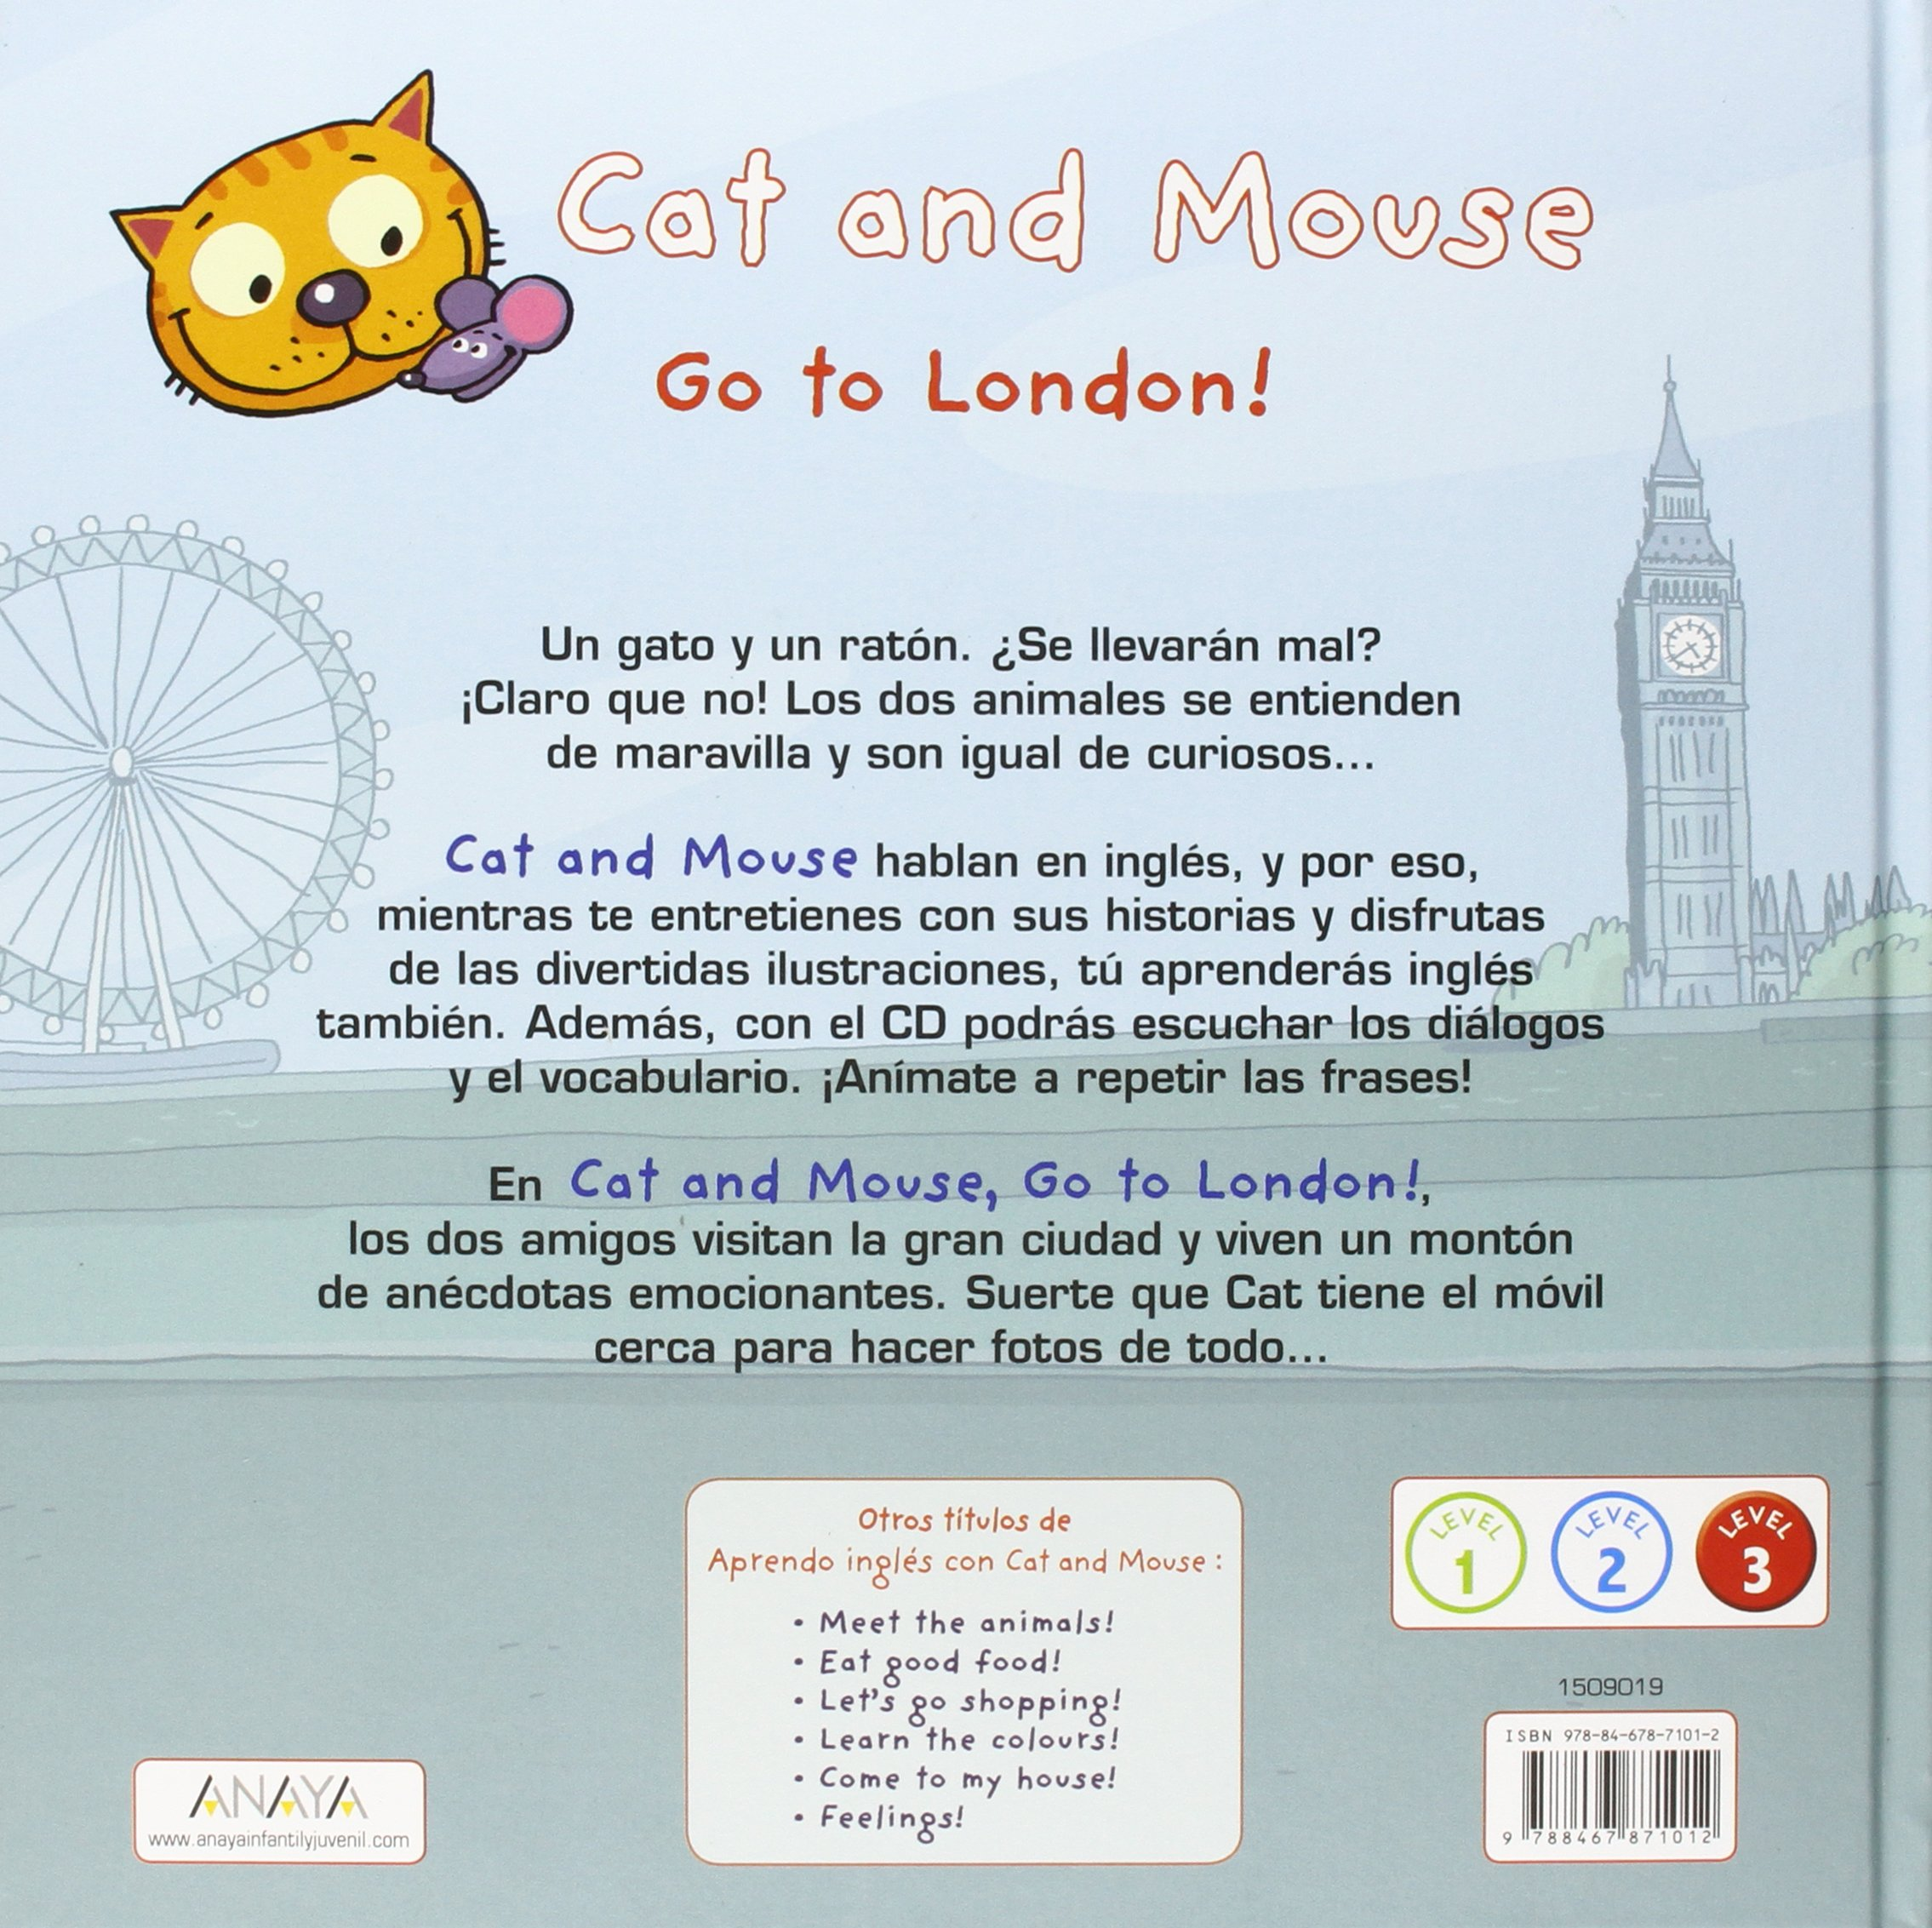 Cat and Mouse. Go to London!: Stéphane Husar: 9788467871012: Amazon.com: Books